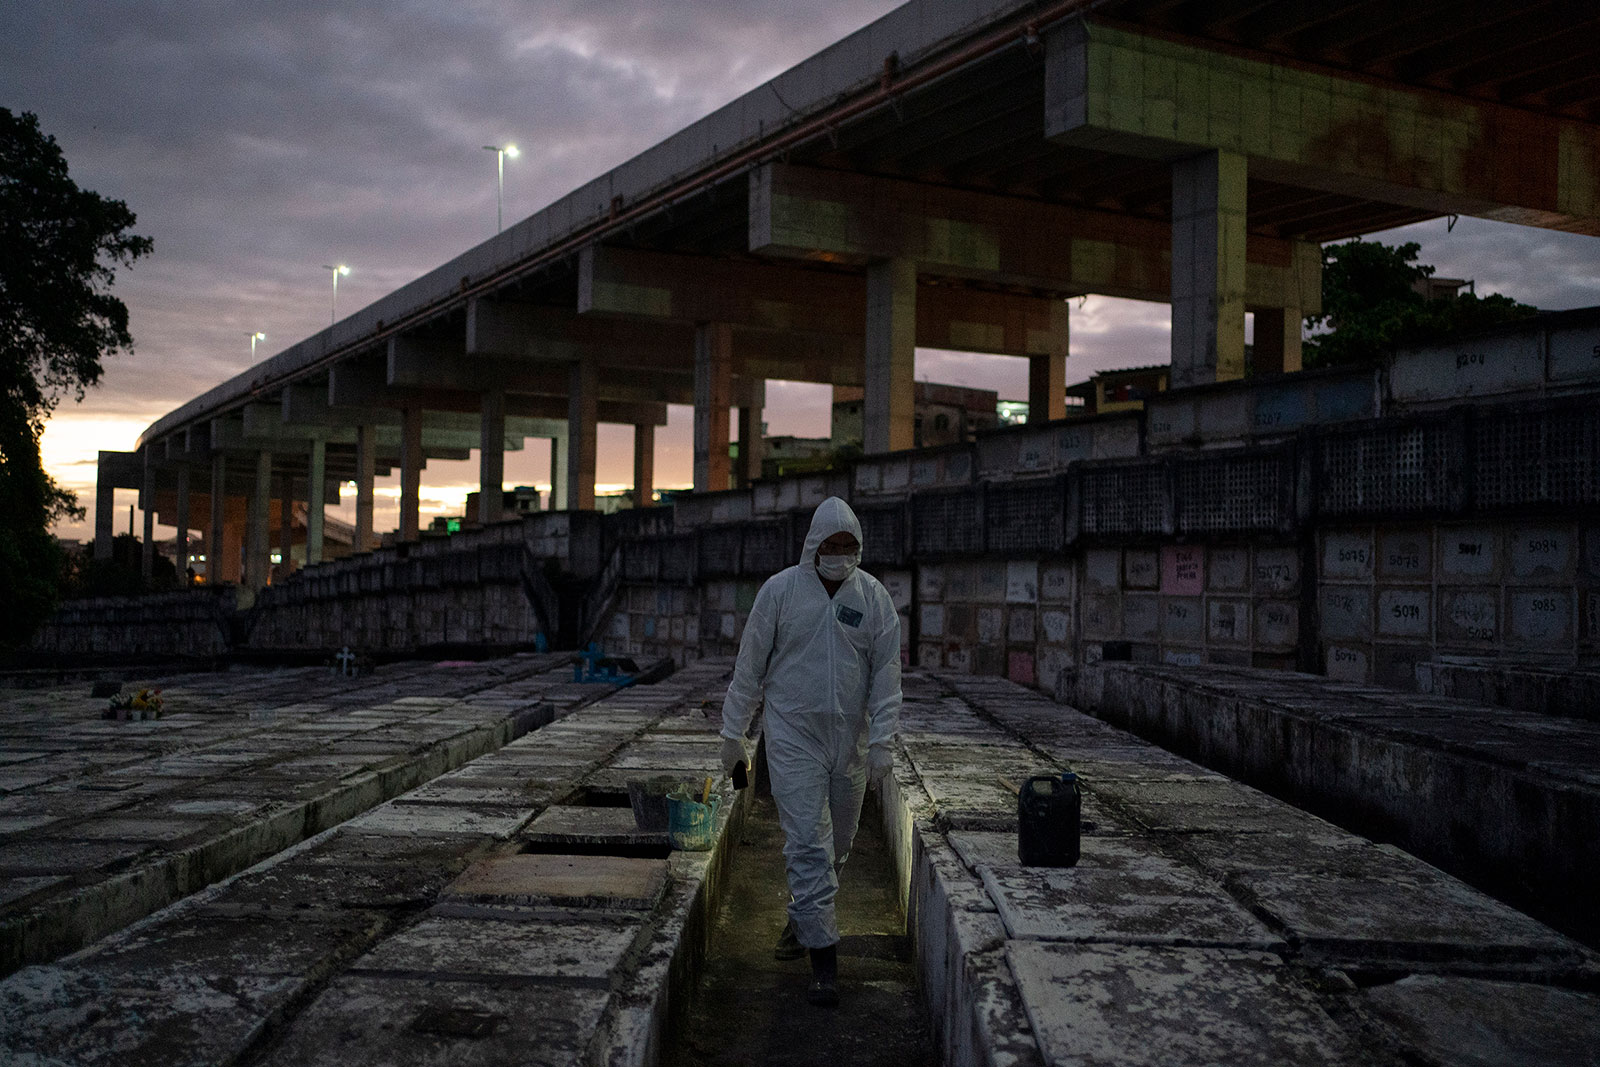 Cemetery worker Bruno Avelino walks through a graveyard in Rio de Janeiro, Brazil, on Friday, May 8.